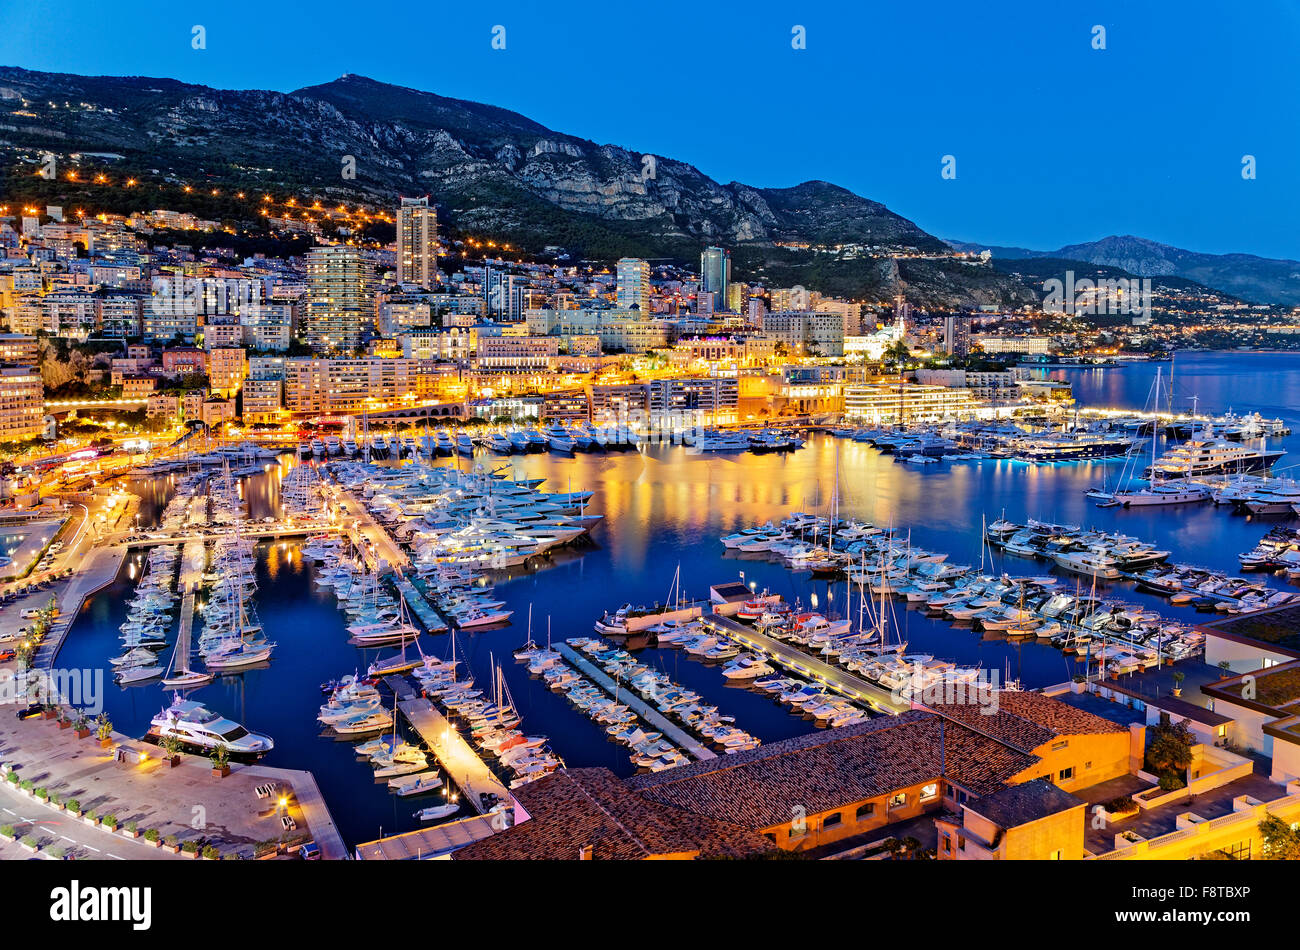 Monaco harbor at night - Stock Image